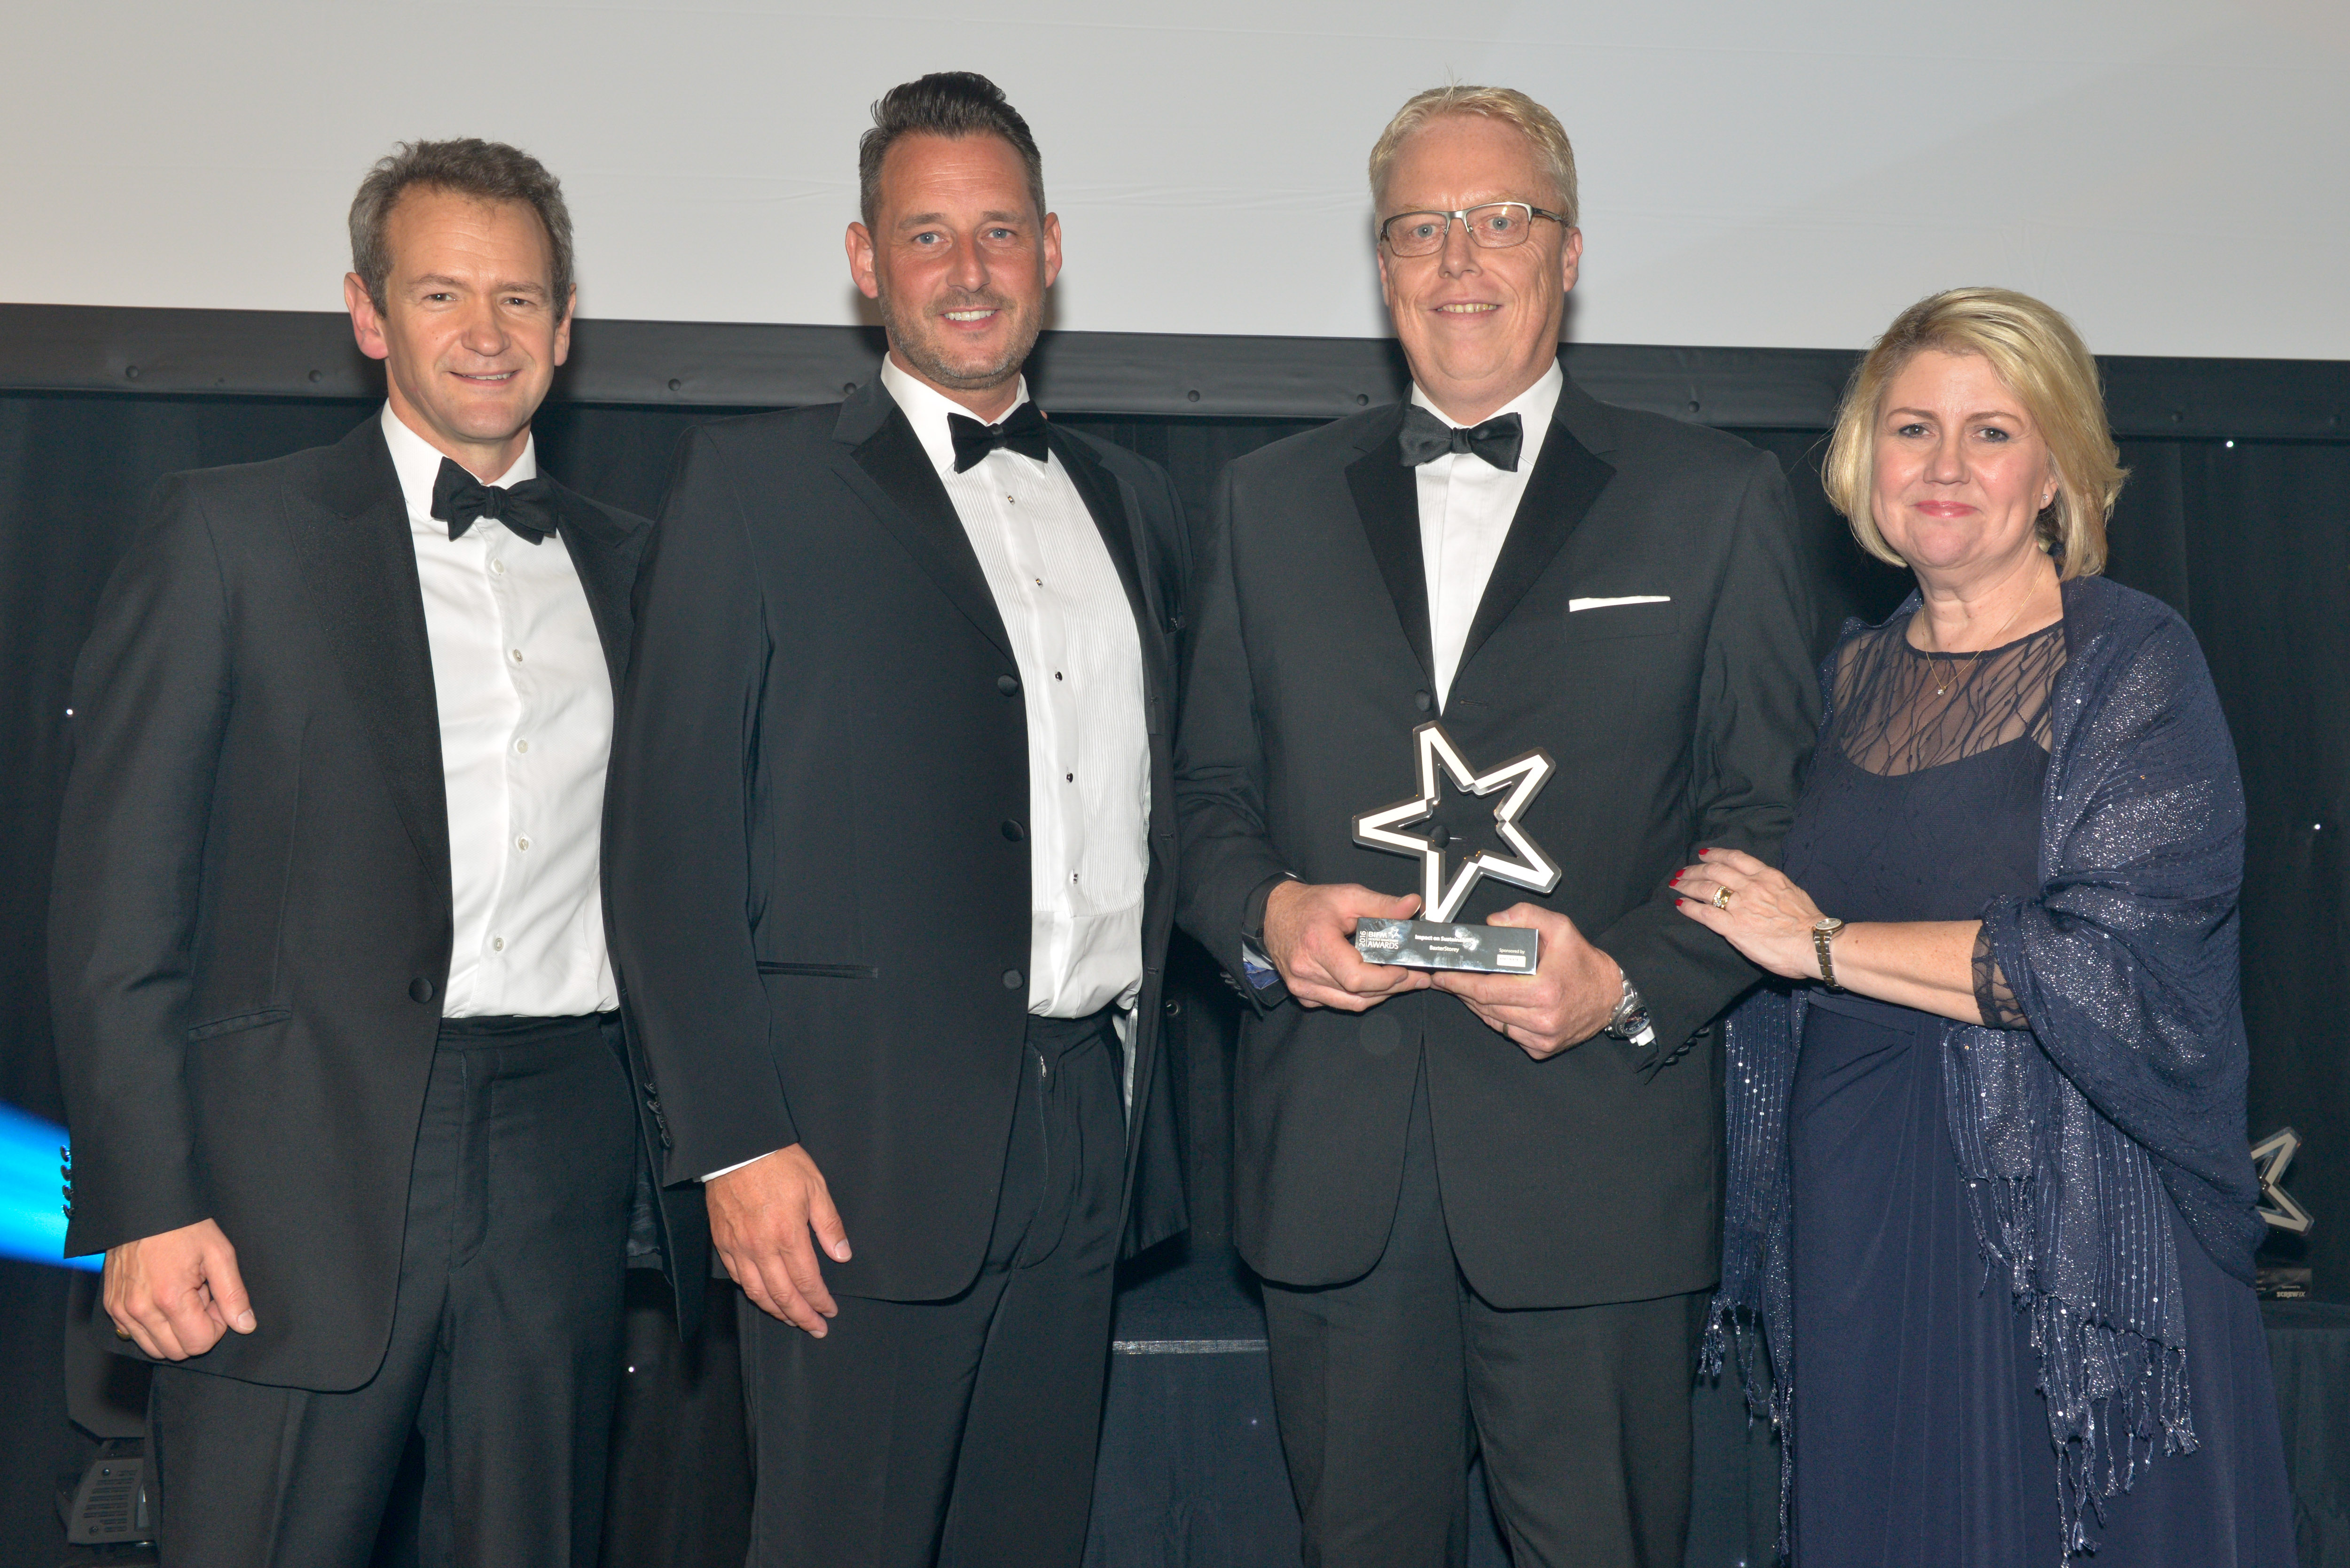 Rexel joins the celebrations at the British Institute of FM Awards